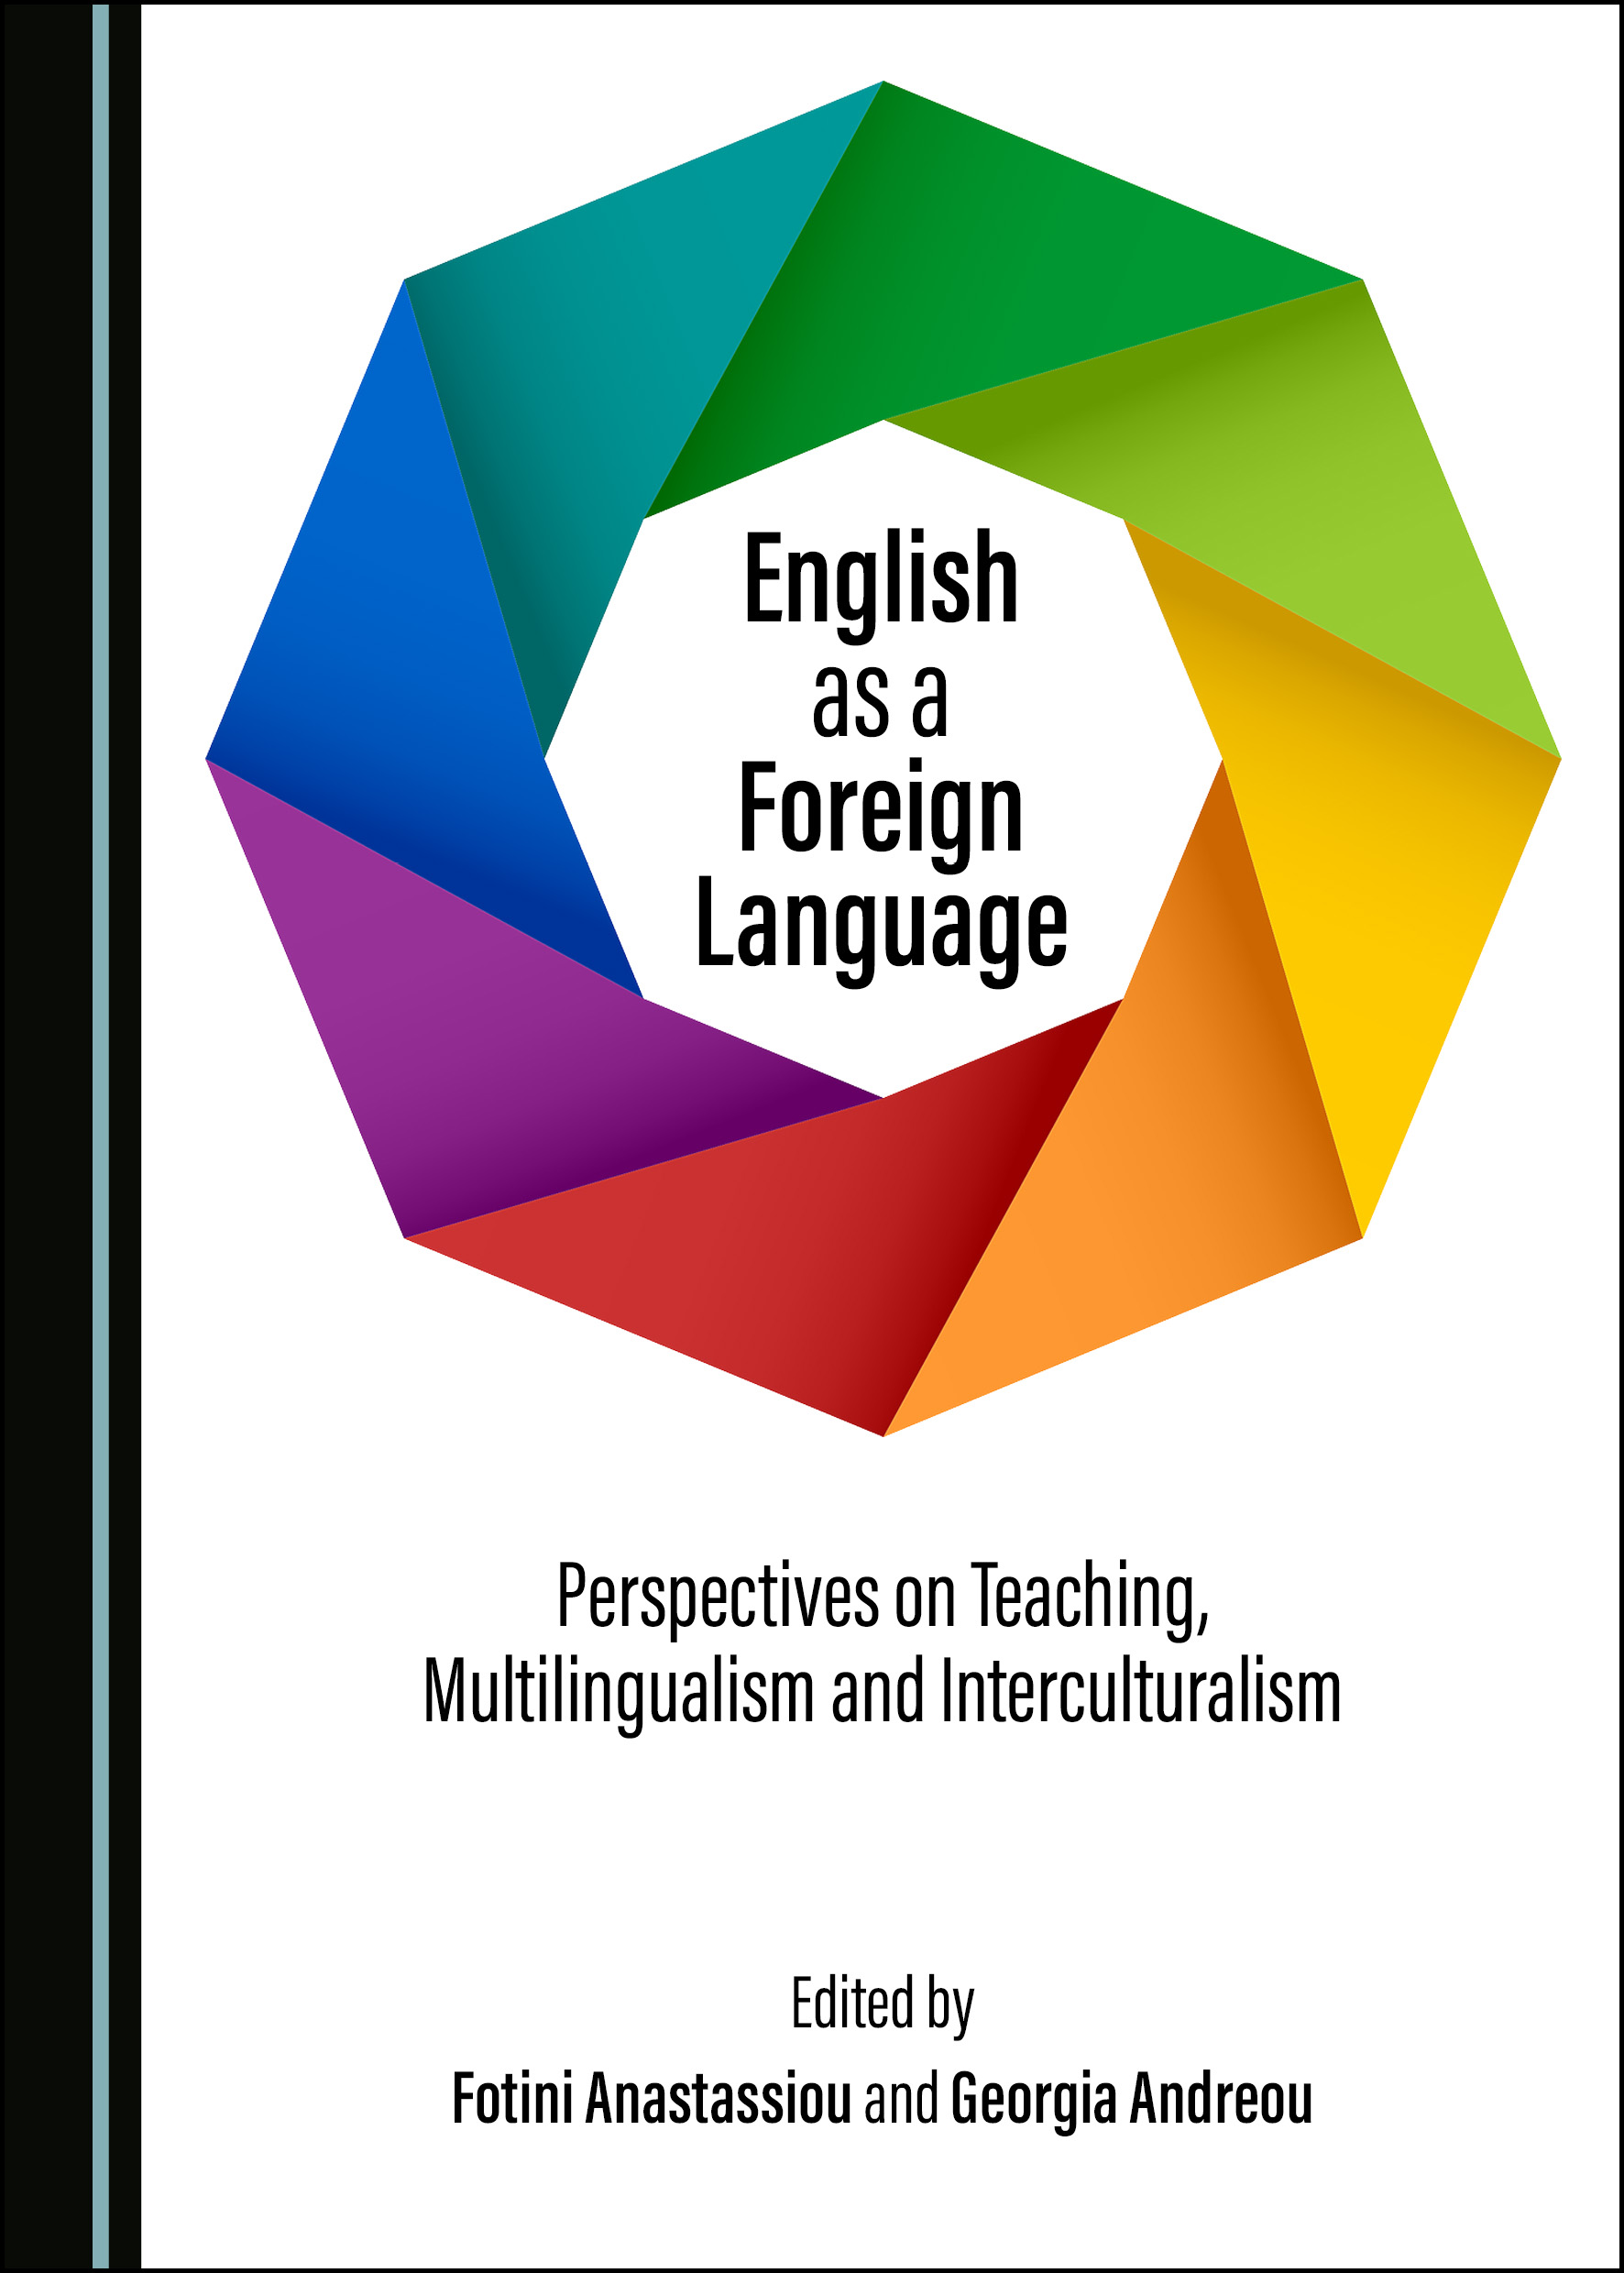 English as a Foreign Language: Perspectives on Teaching, Multilingualism and Interculturalism